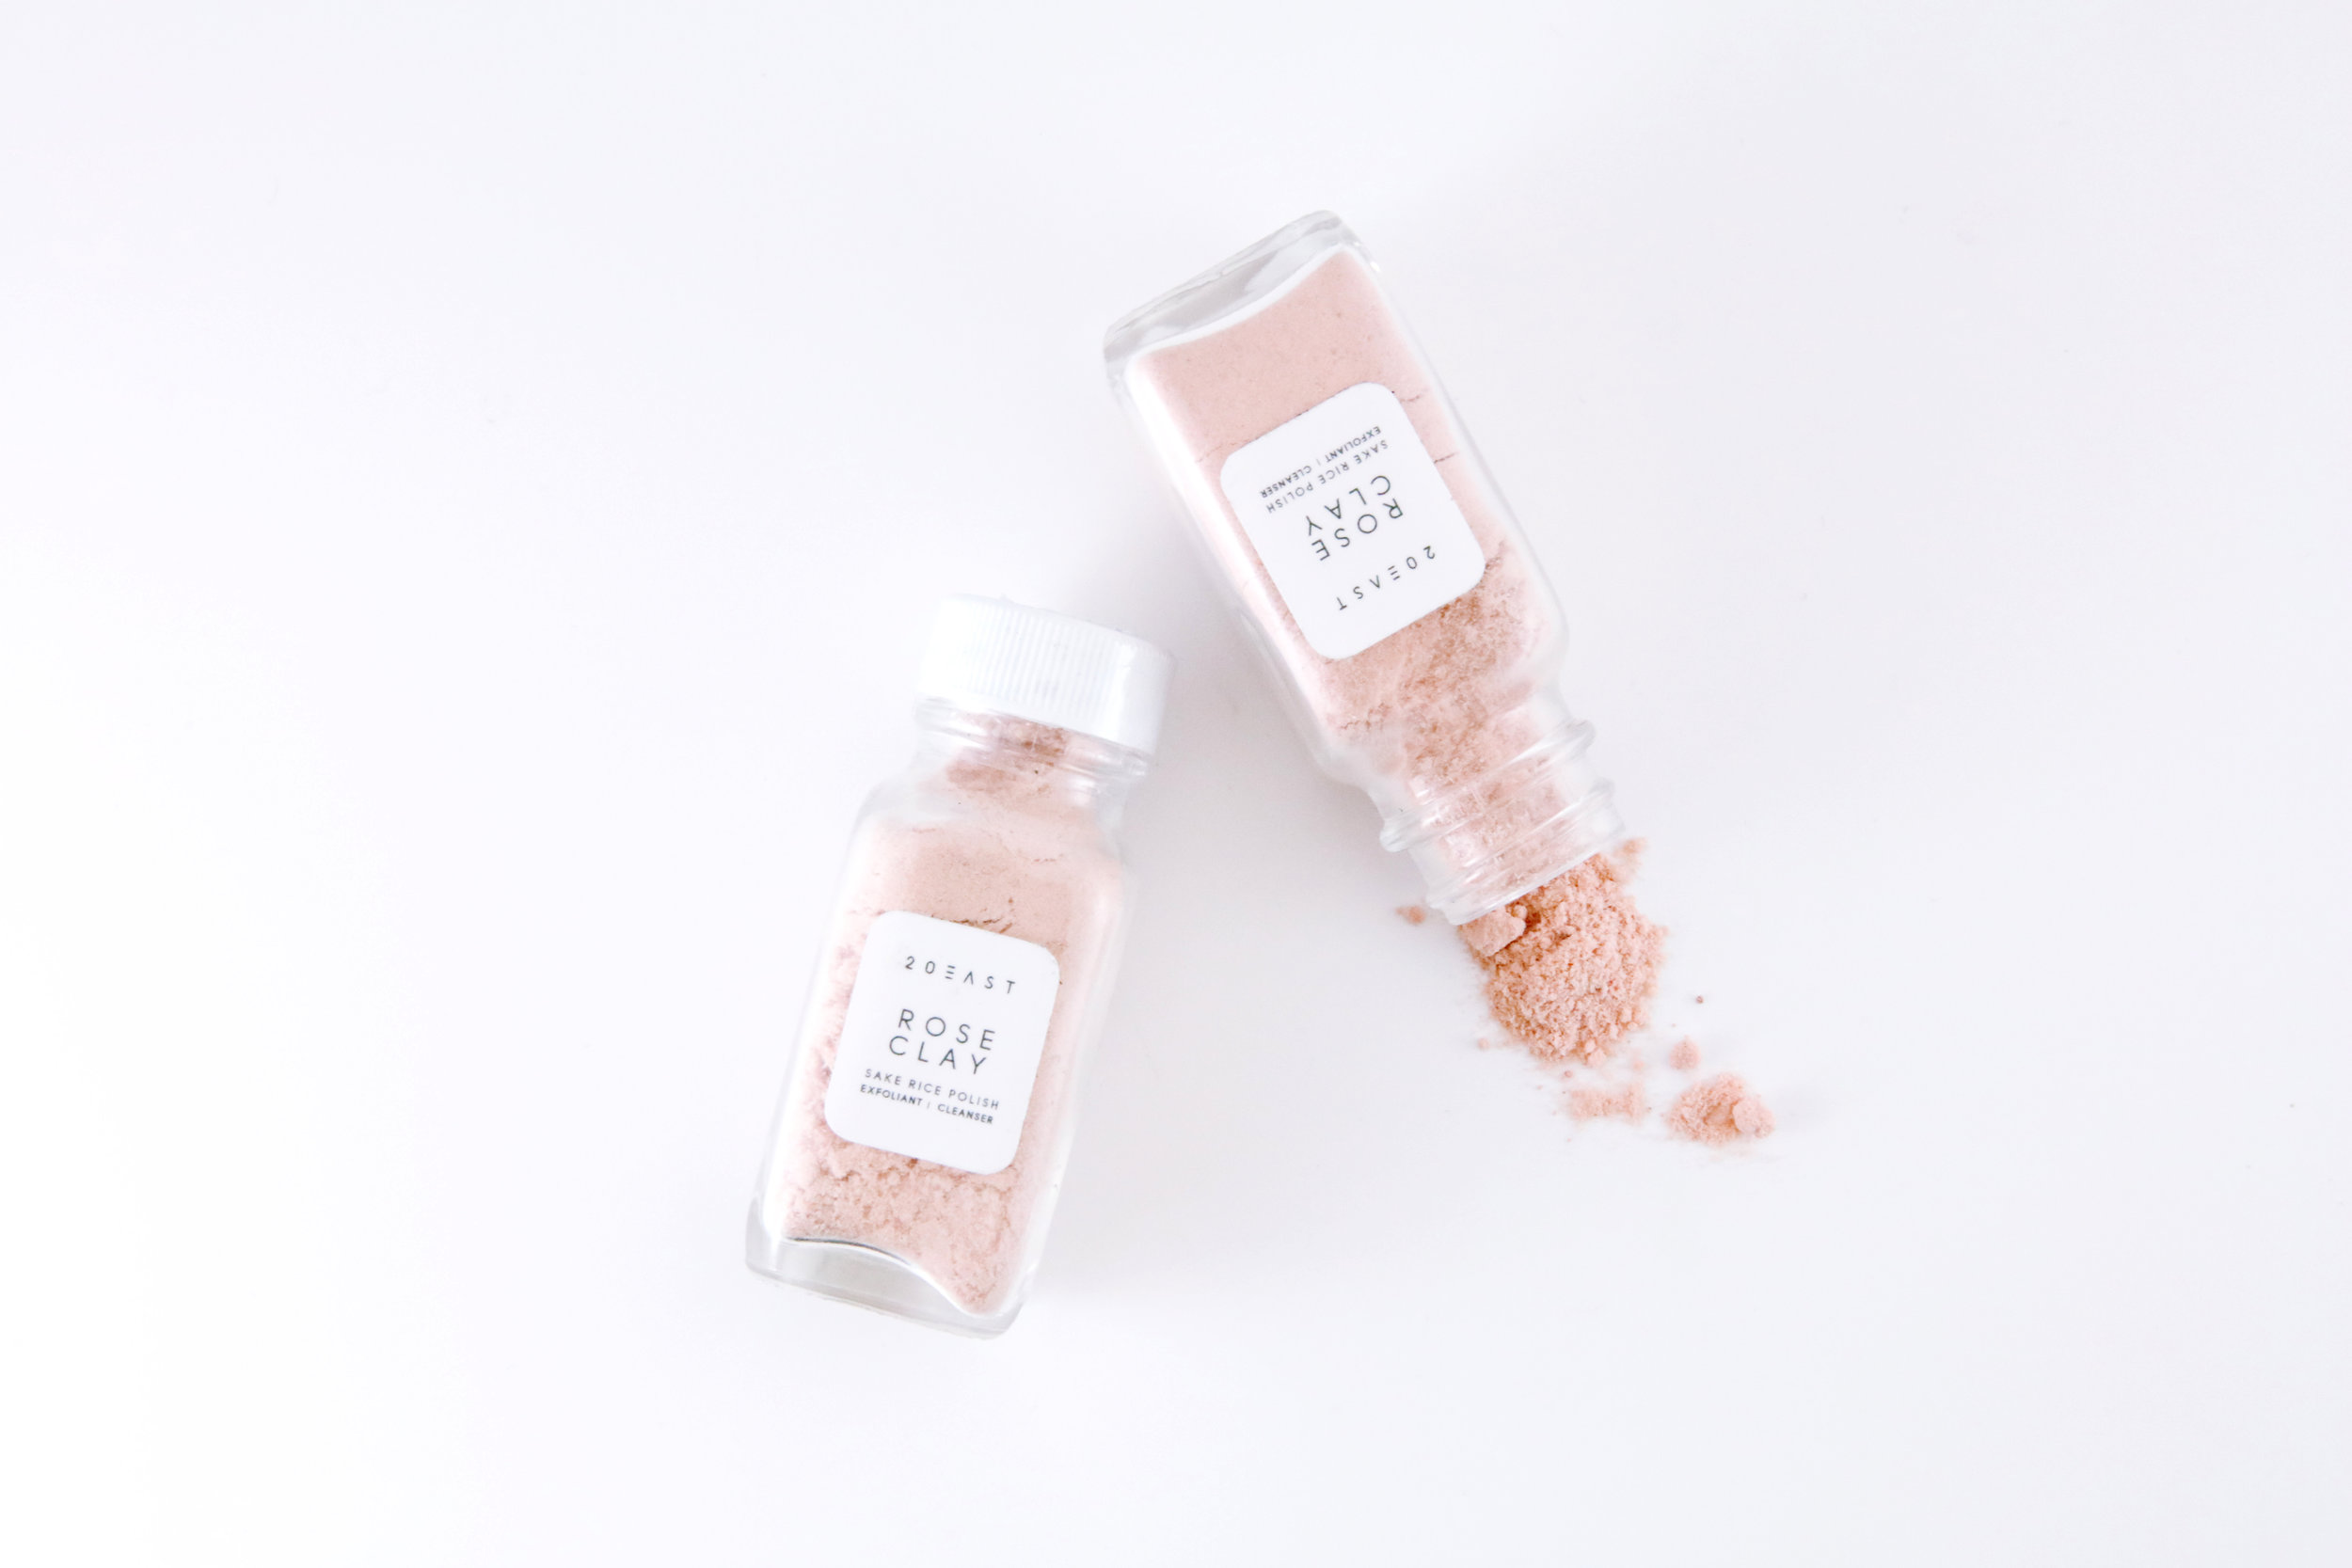 Beauty Item: Rose Clay   20 EAST BOTANICALS ROSE CLAY SAKE RICE POLISH is driven by handcrafted, natural, ethical, ingredients.  An everyday foaming scrub that exfoliates mildly and removes dirt, gently respecting your skin.  HOW TO USE: Pour a little in your hands, add some warm water until you have a thin paste. Massage onto clean and damp face, rinse and pat dry for perfection.